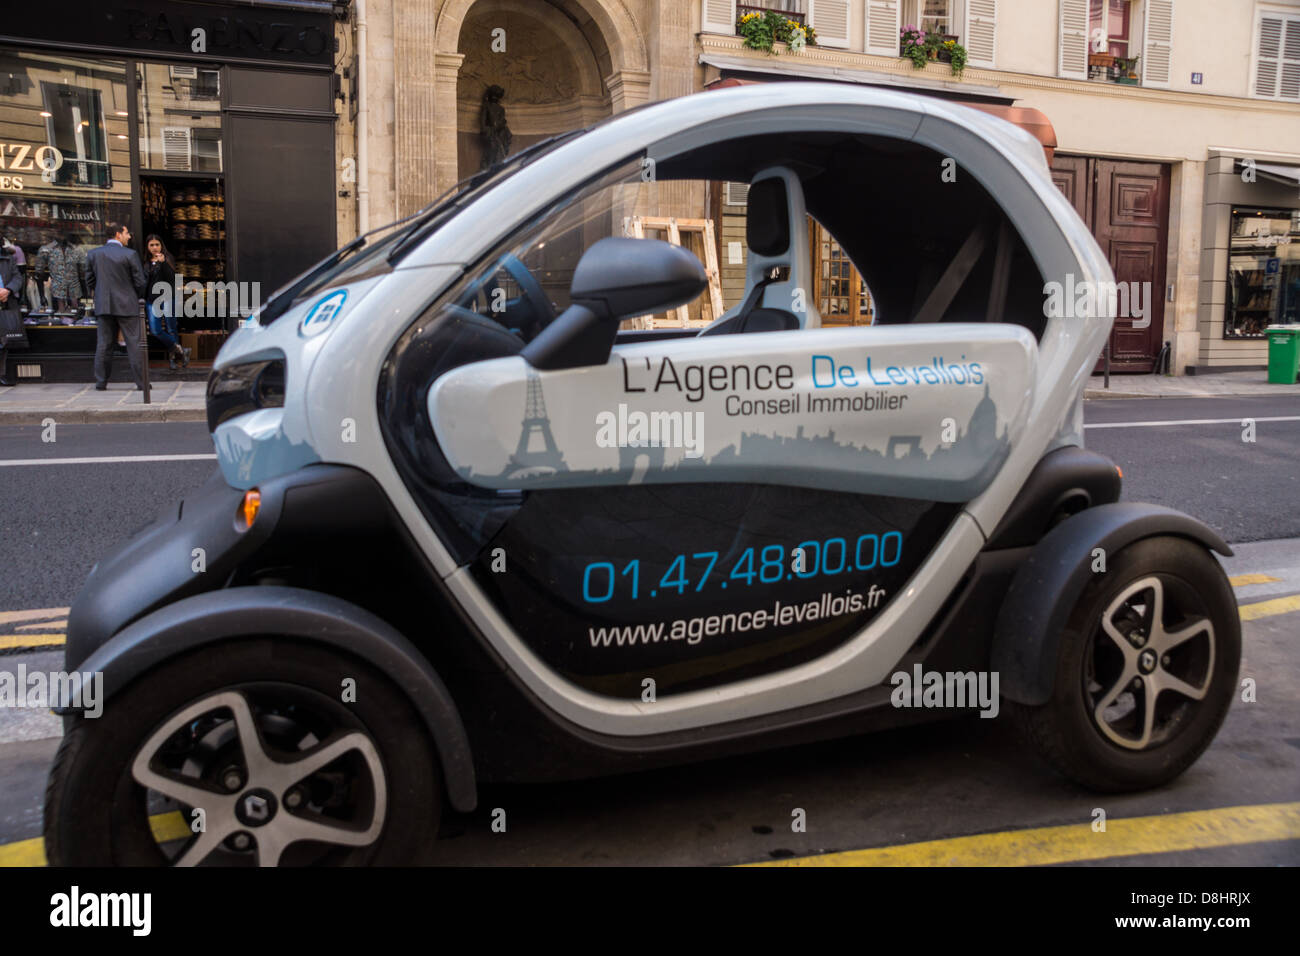 paris a renault twizy electric car quadricycle stock photo royalty free image 56940098 alamy. Black Bedroom Furniture Sets. Home Design Ideas